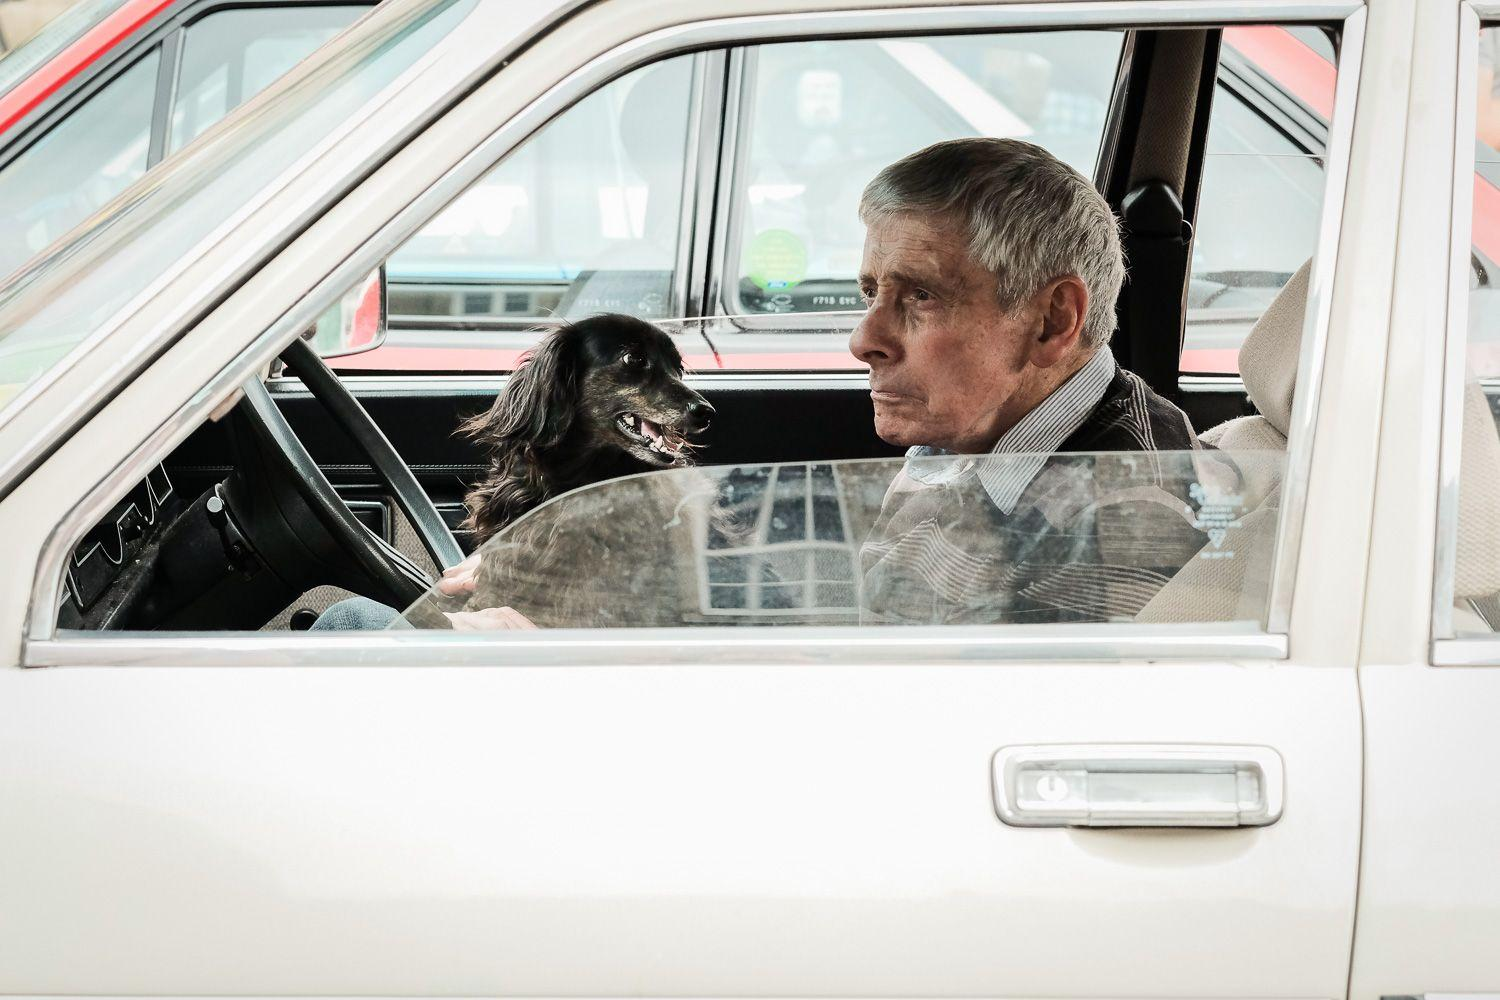 street photo of man sitting in car with dog on lap